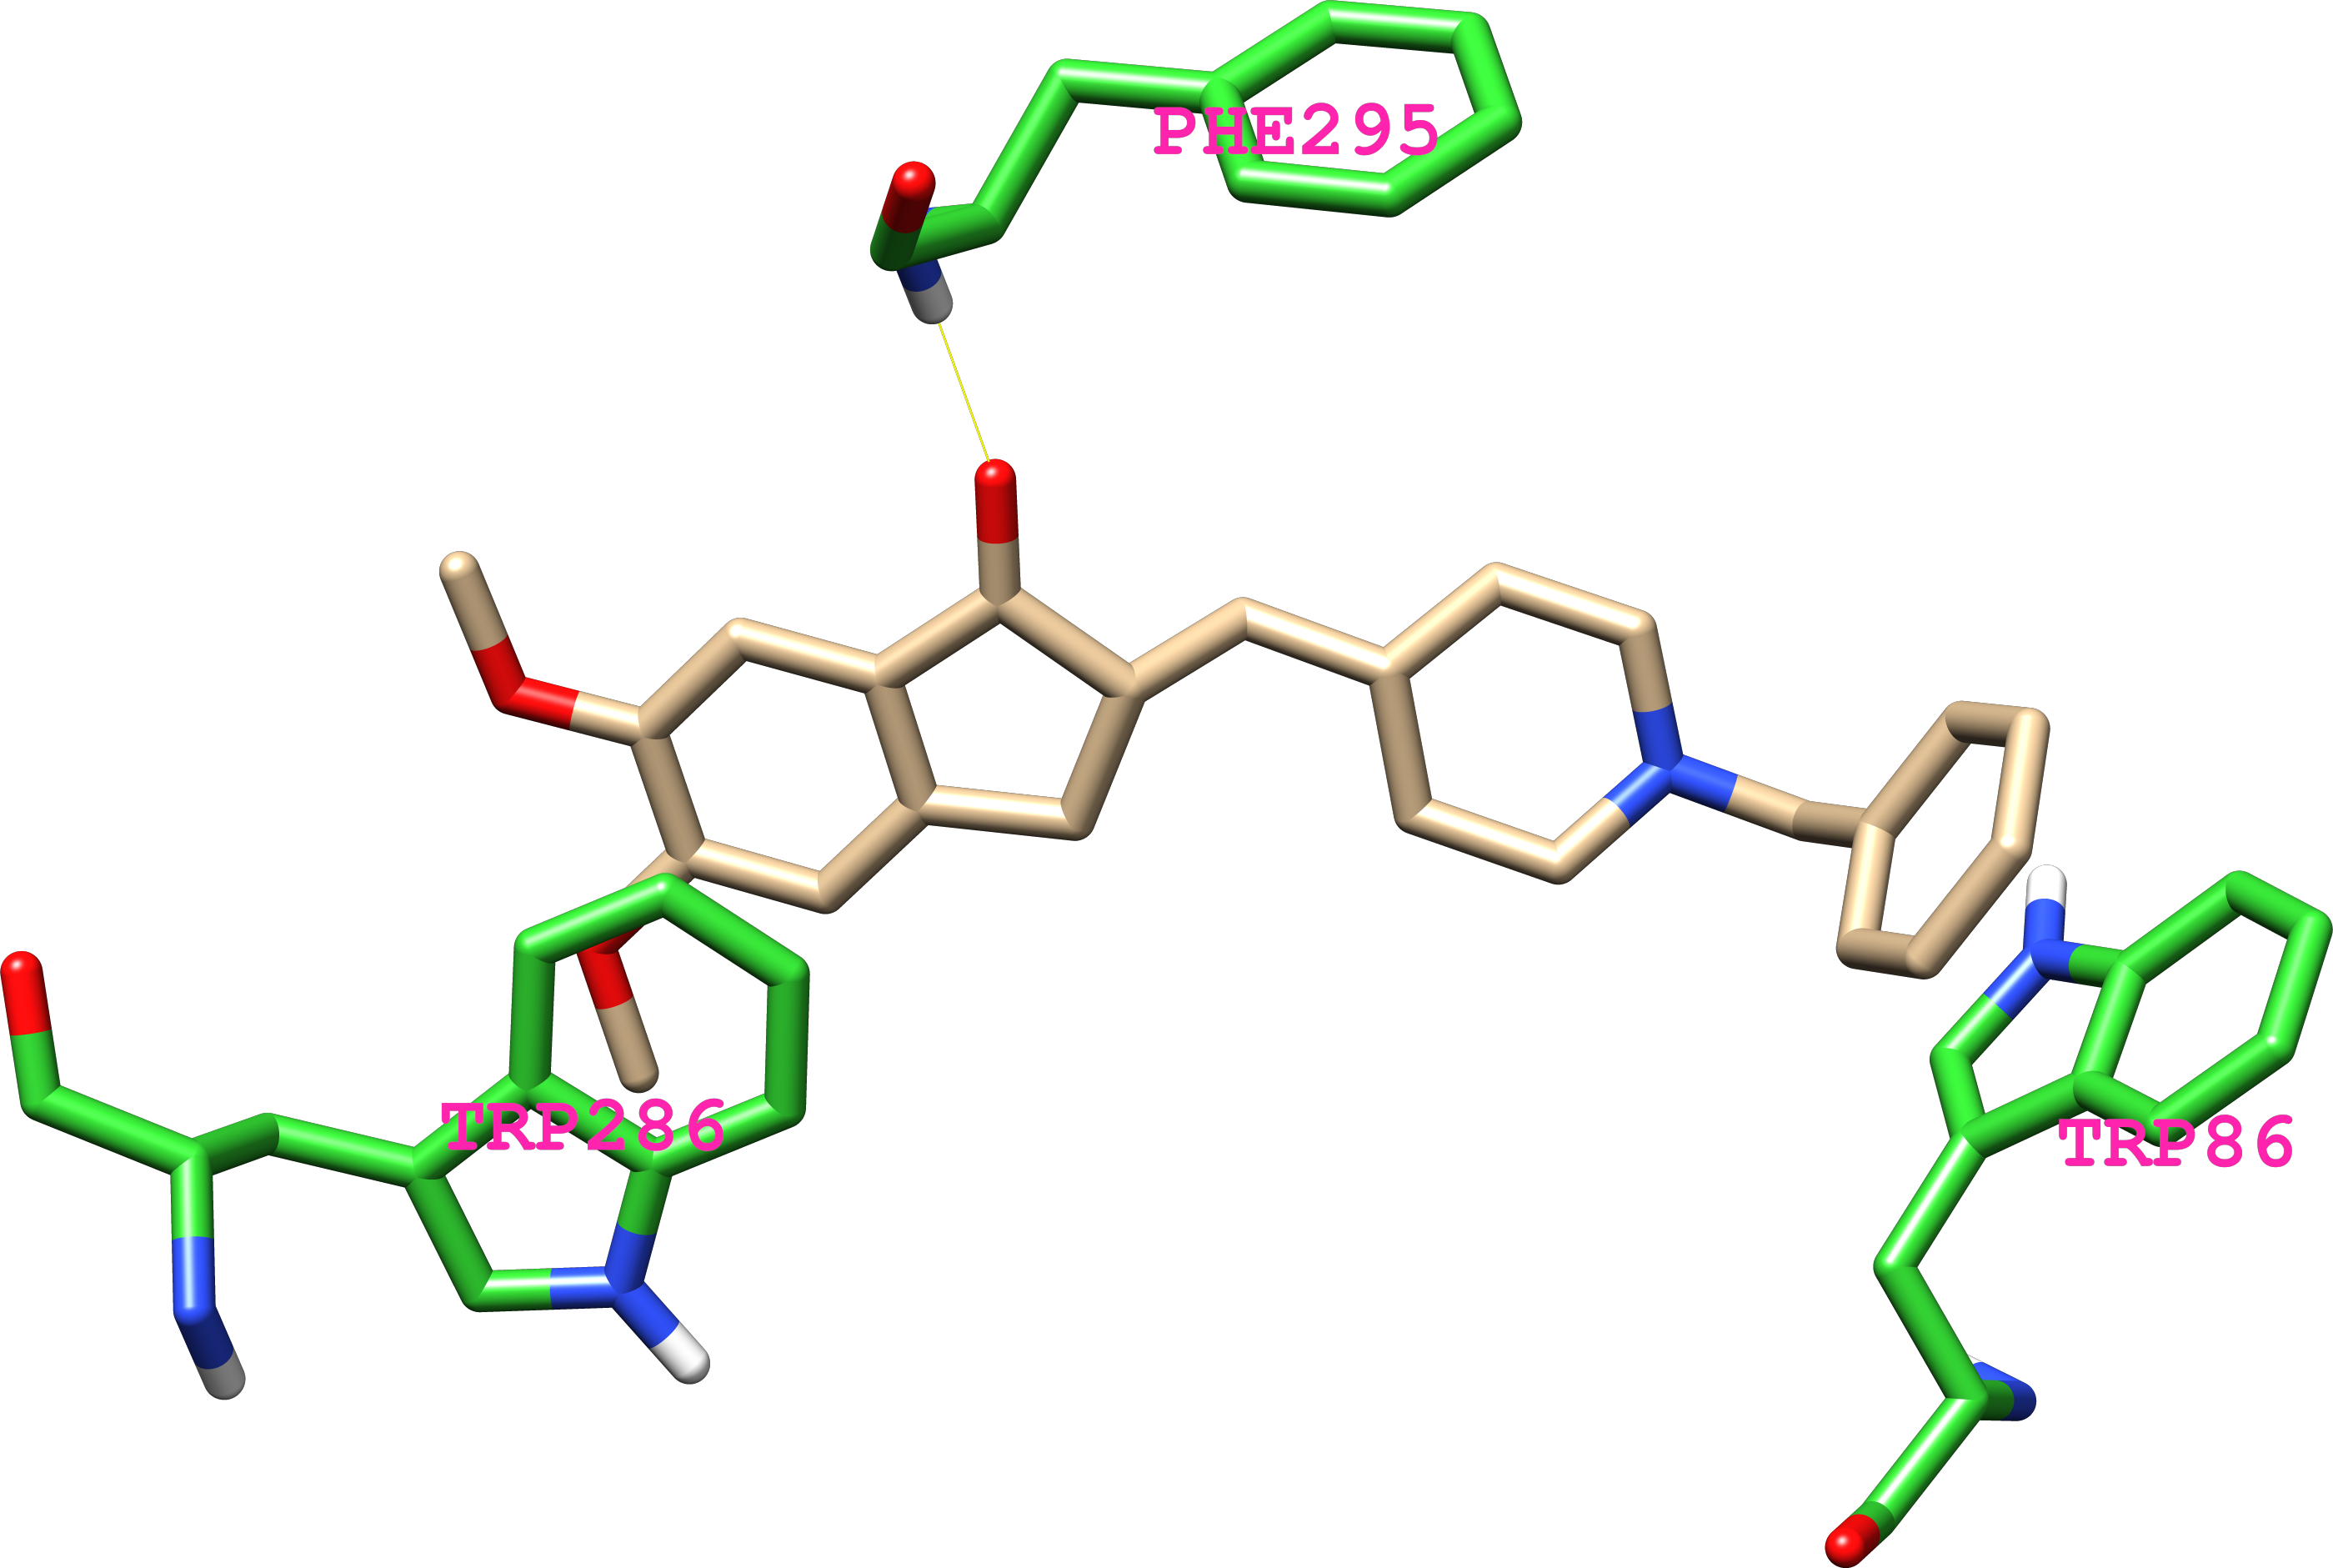 acetylcholinesterase Acetylcholinesterase: an enzyme that breaks down the neurotransmitter acetylcholine at the synaptic cleft (the space between two nerve cells) so the next nerve impulse can be transmitted across the synaptic gap.